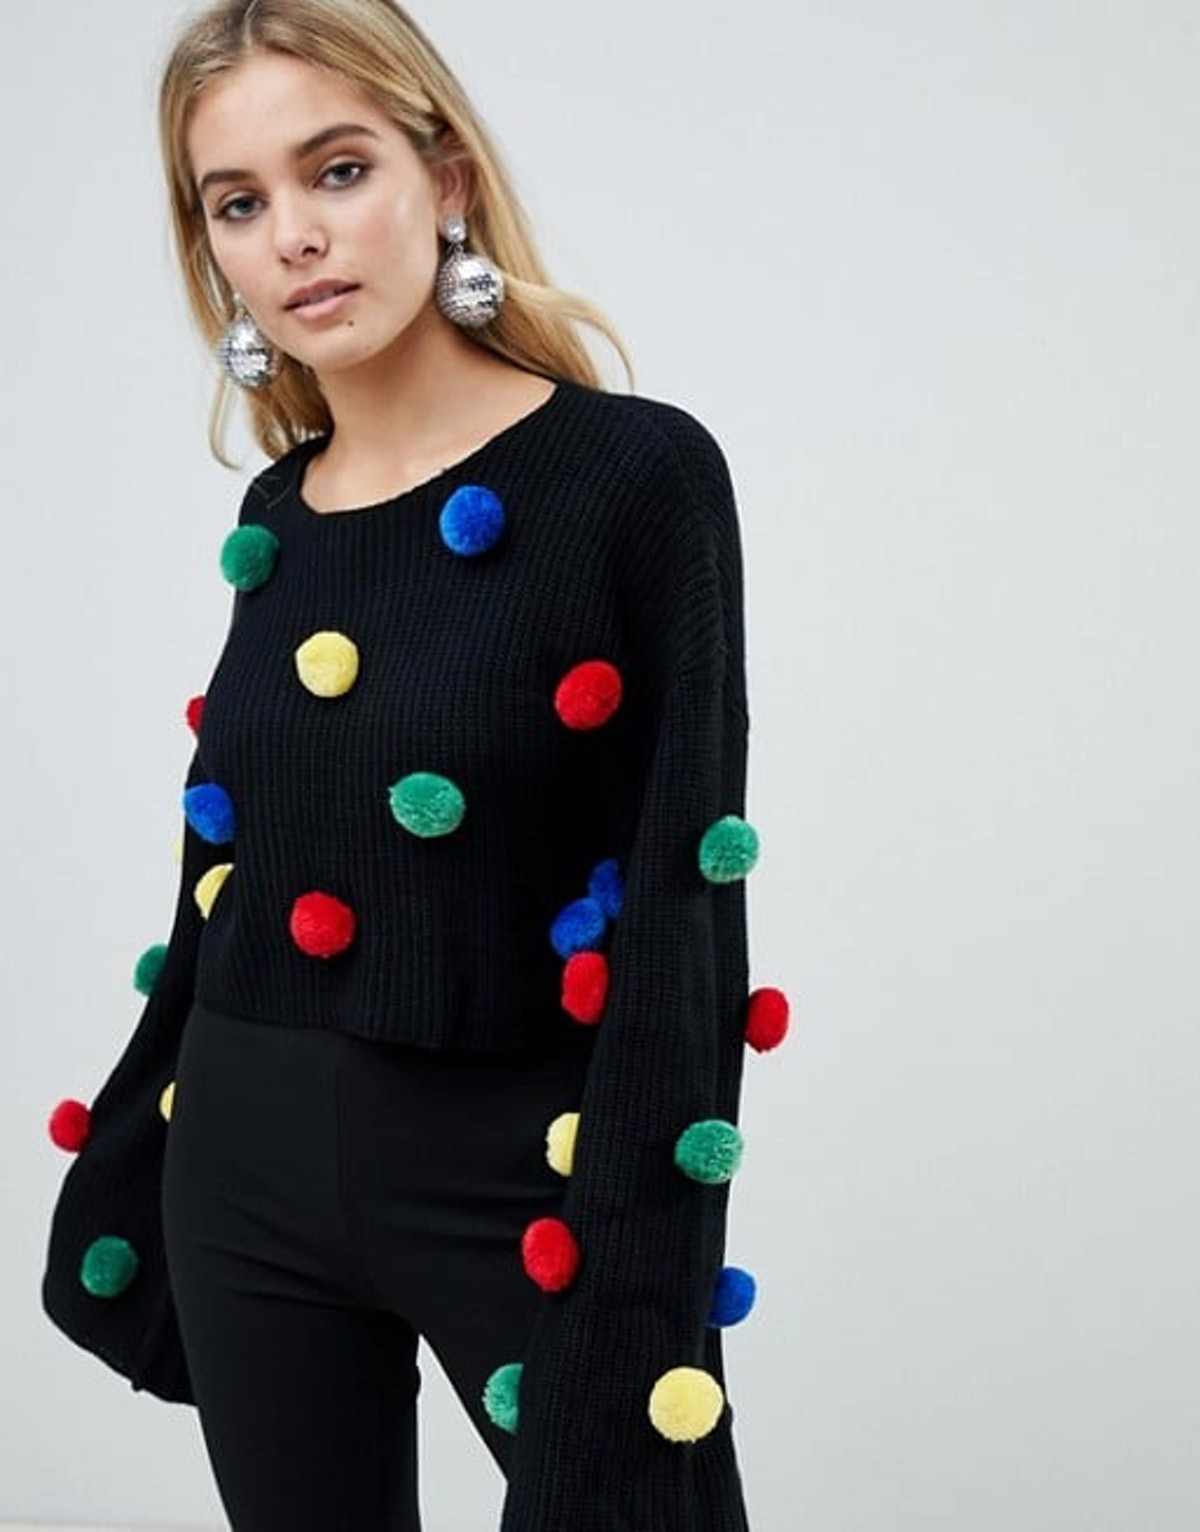 PrettyLittleThing Holidays Sweater With Pom Poms in Black